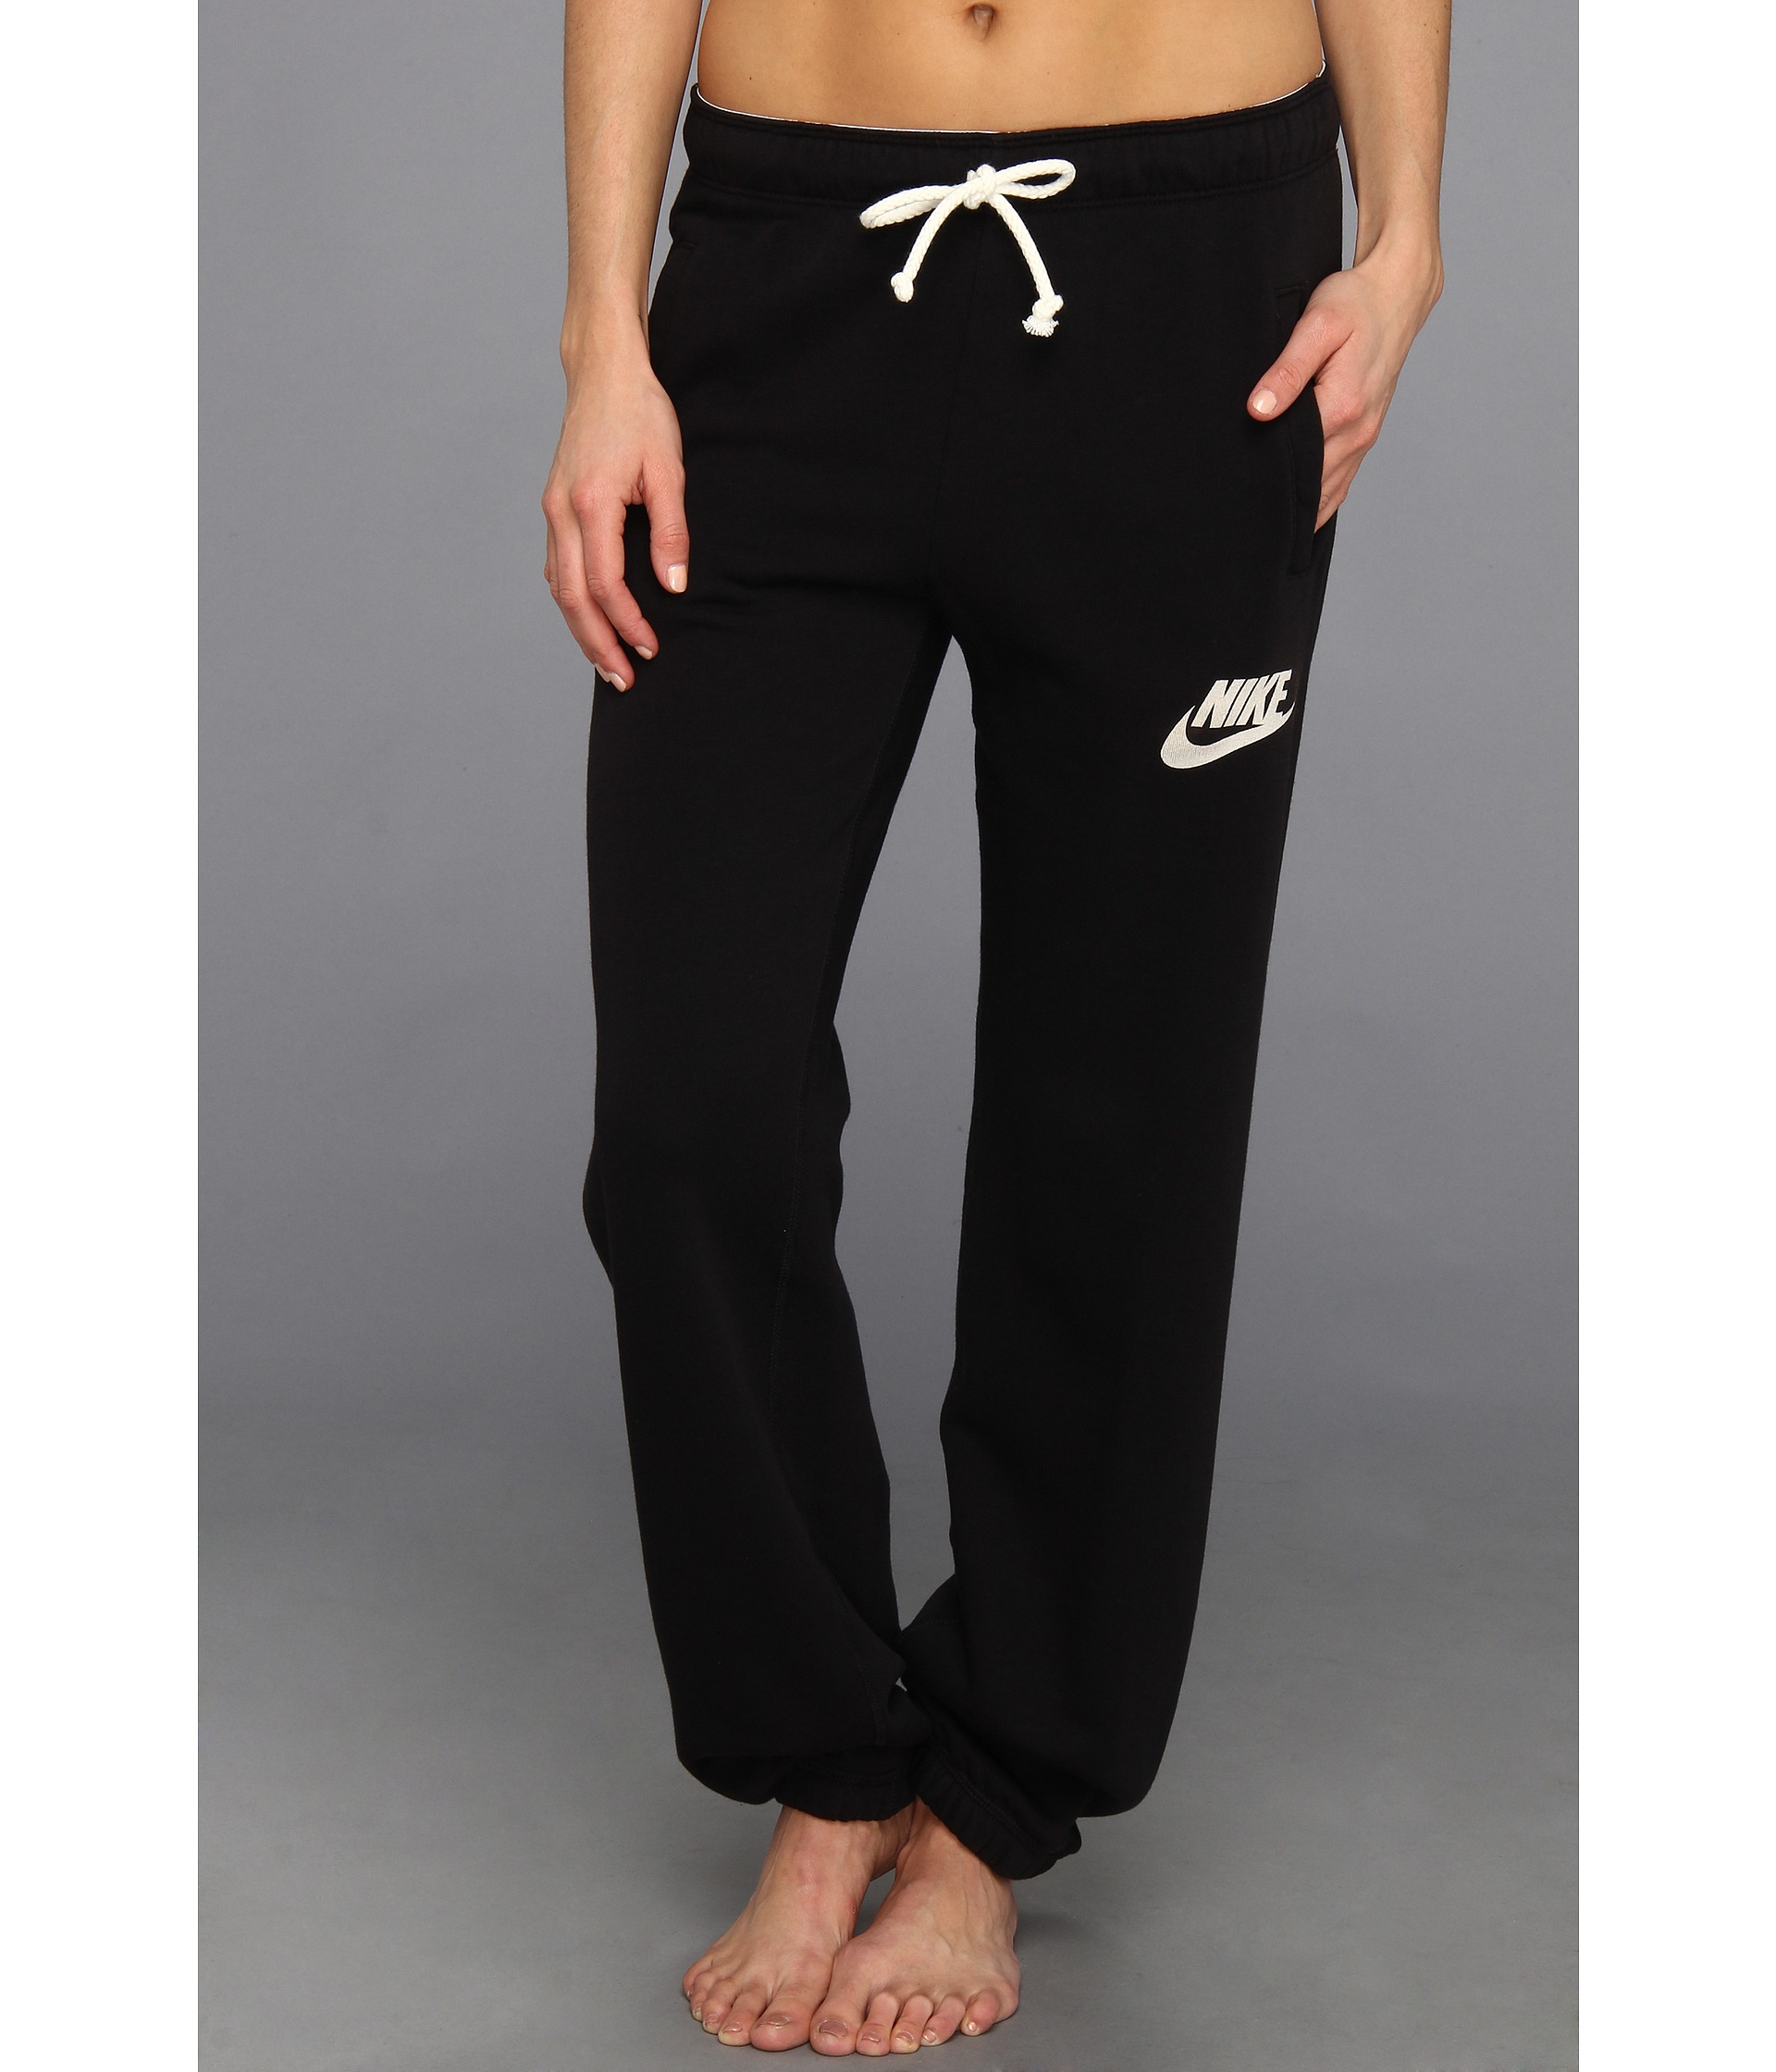 Model Nike Soccer Knit Pant Clothing  Shipped Free At Zappos